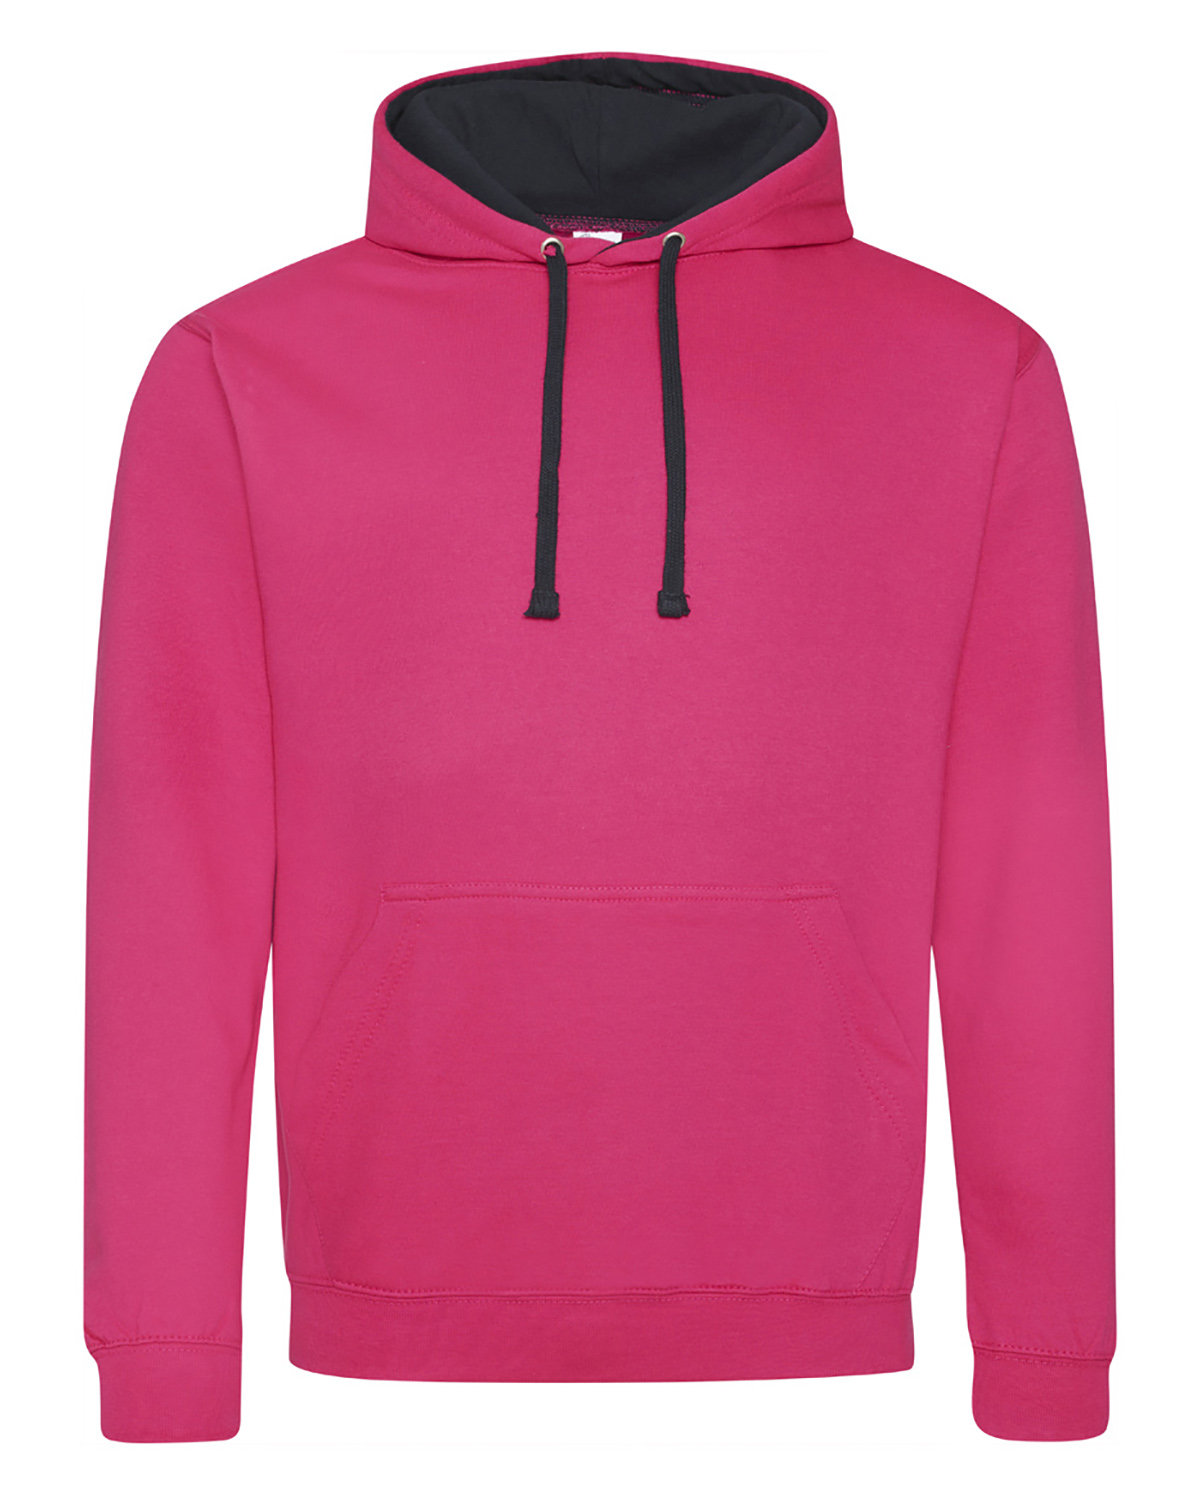 Just Hoods By AWDis Adult 80/20 Midweight Varsity Contrast Hooded Sweatshirt HOT PNK/ FRN NVY